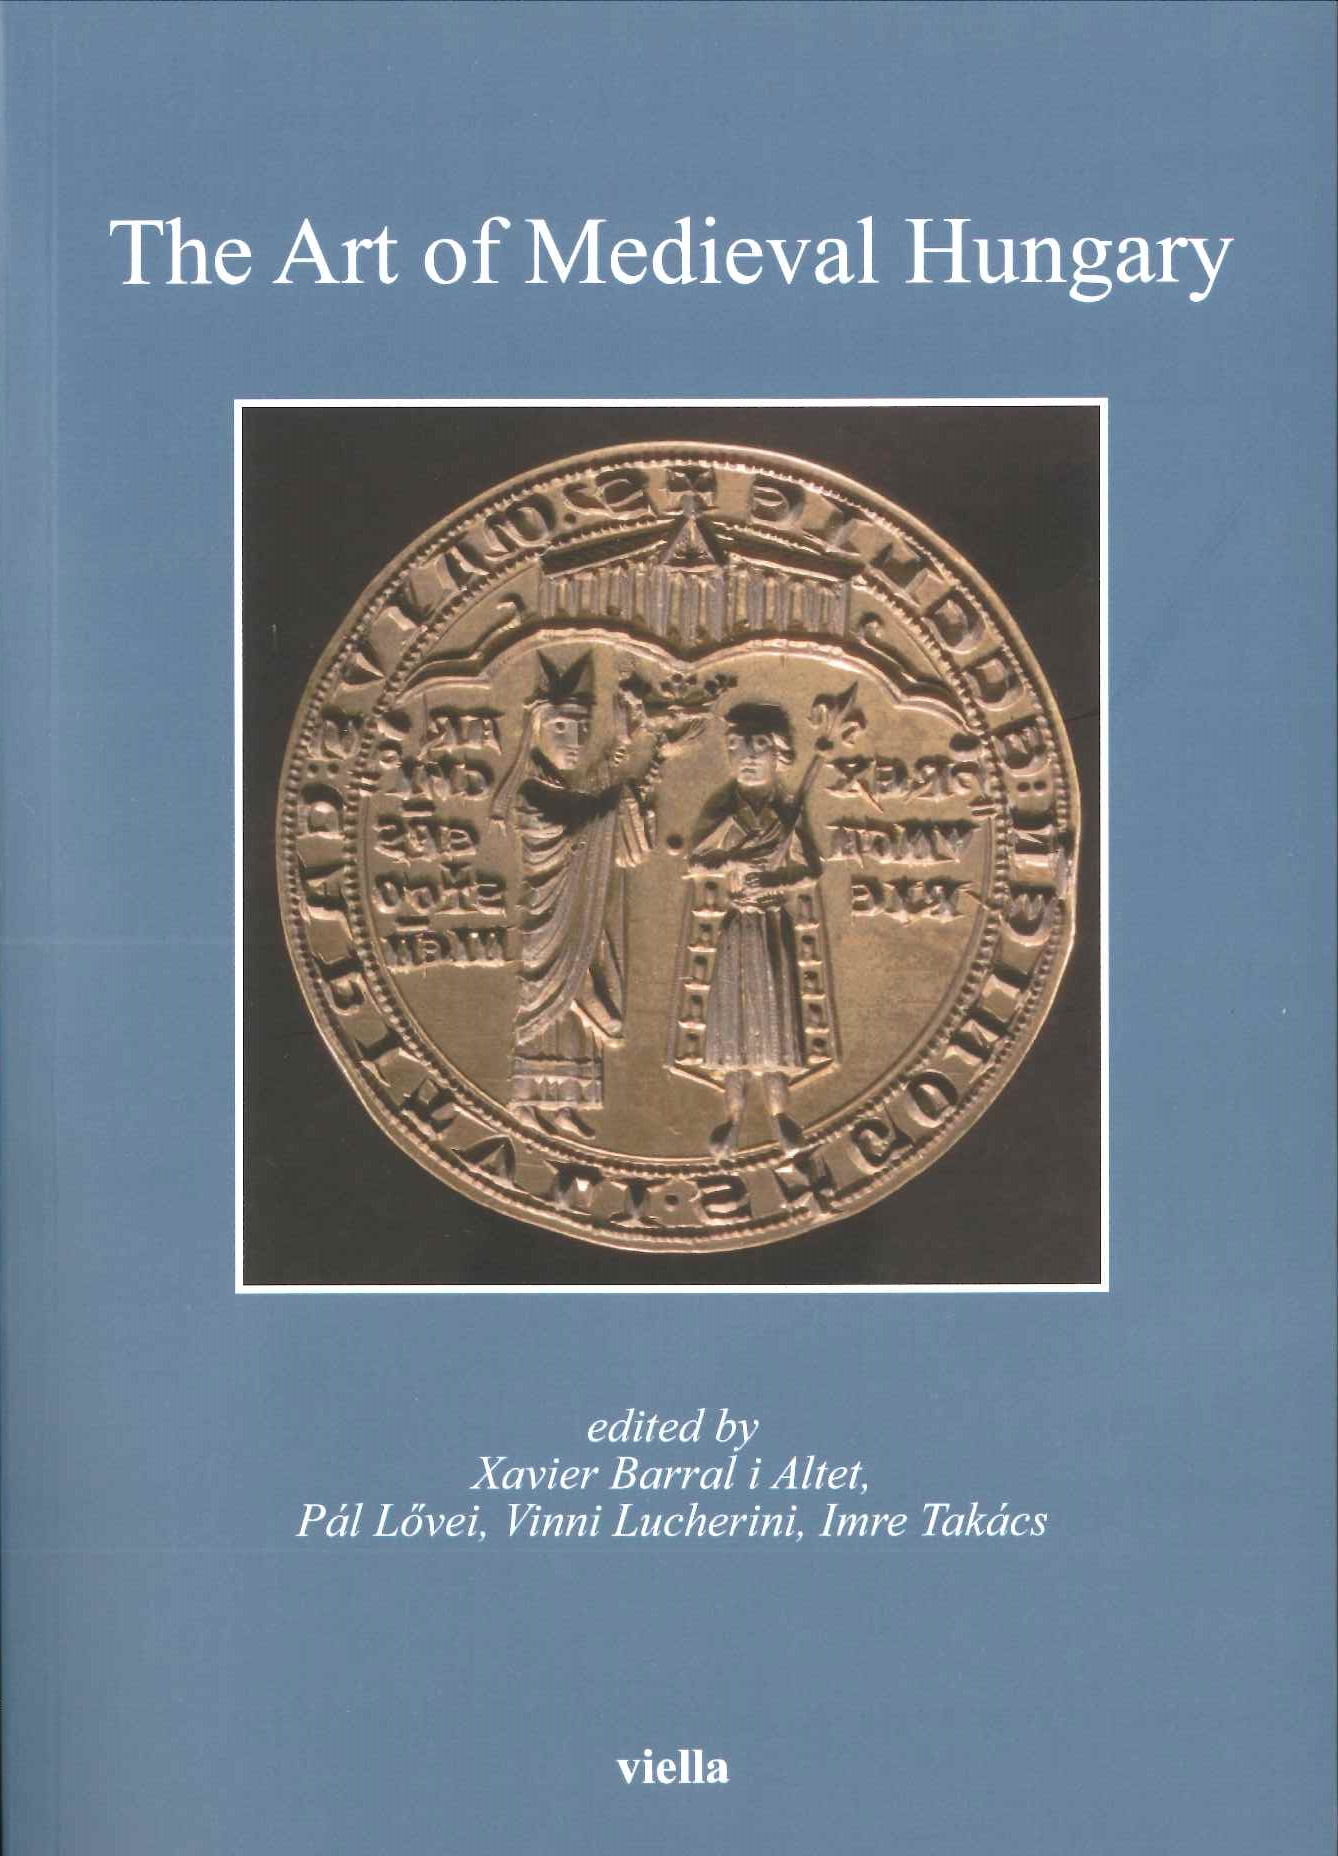 The Art of Medieval Hungary